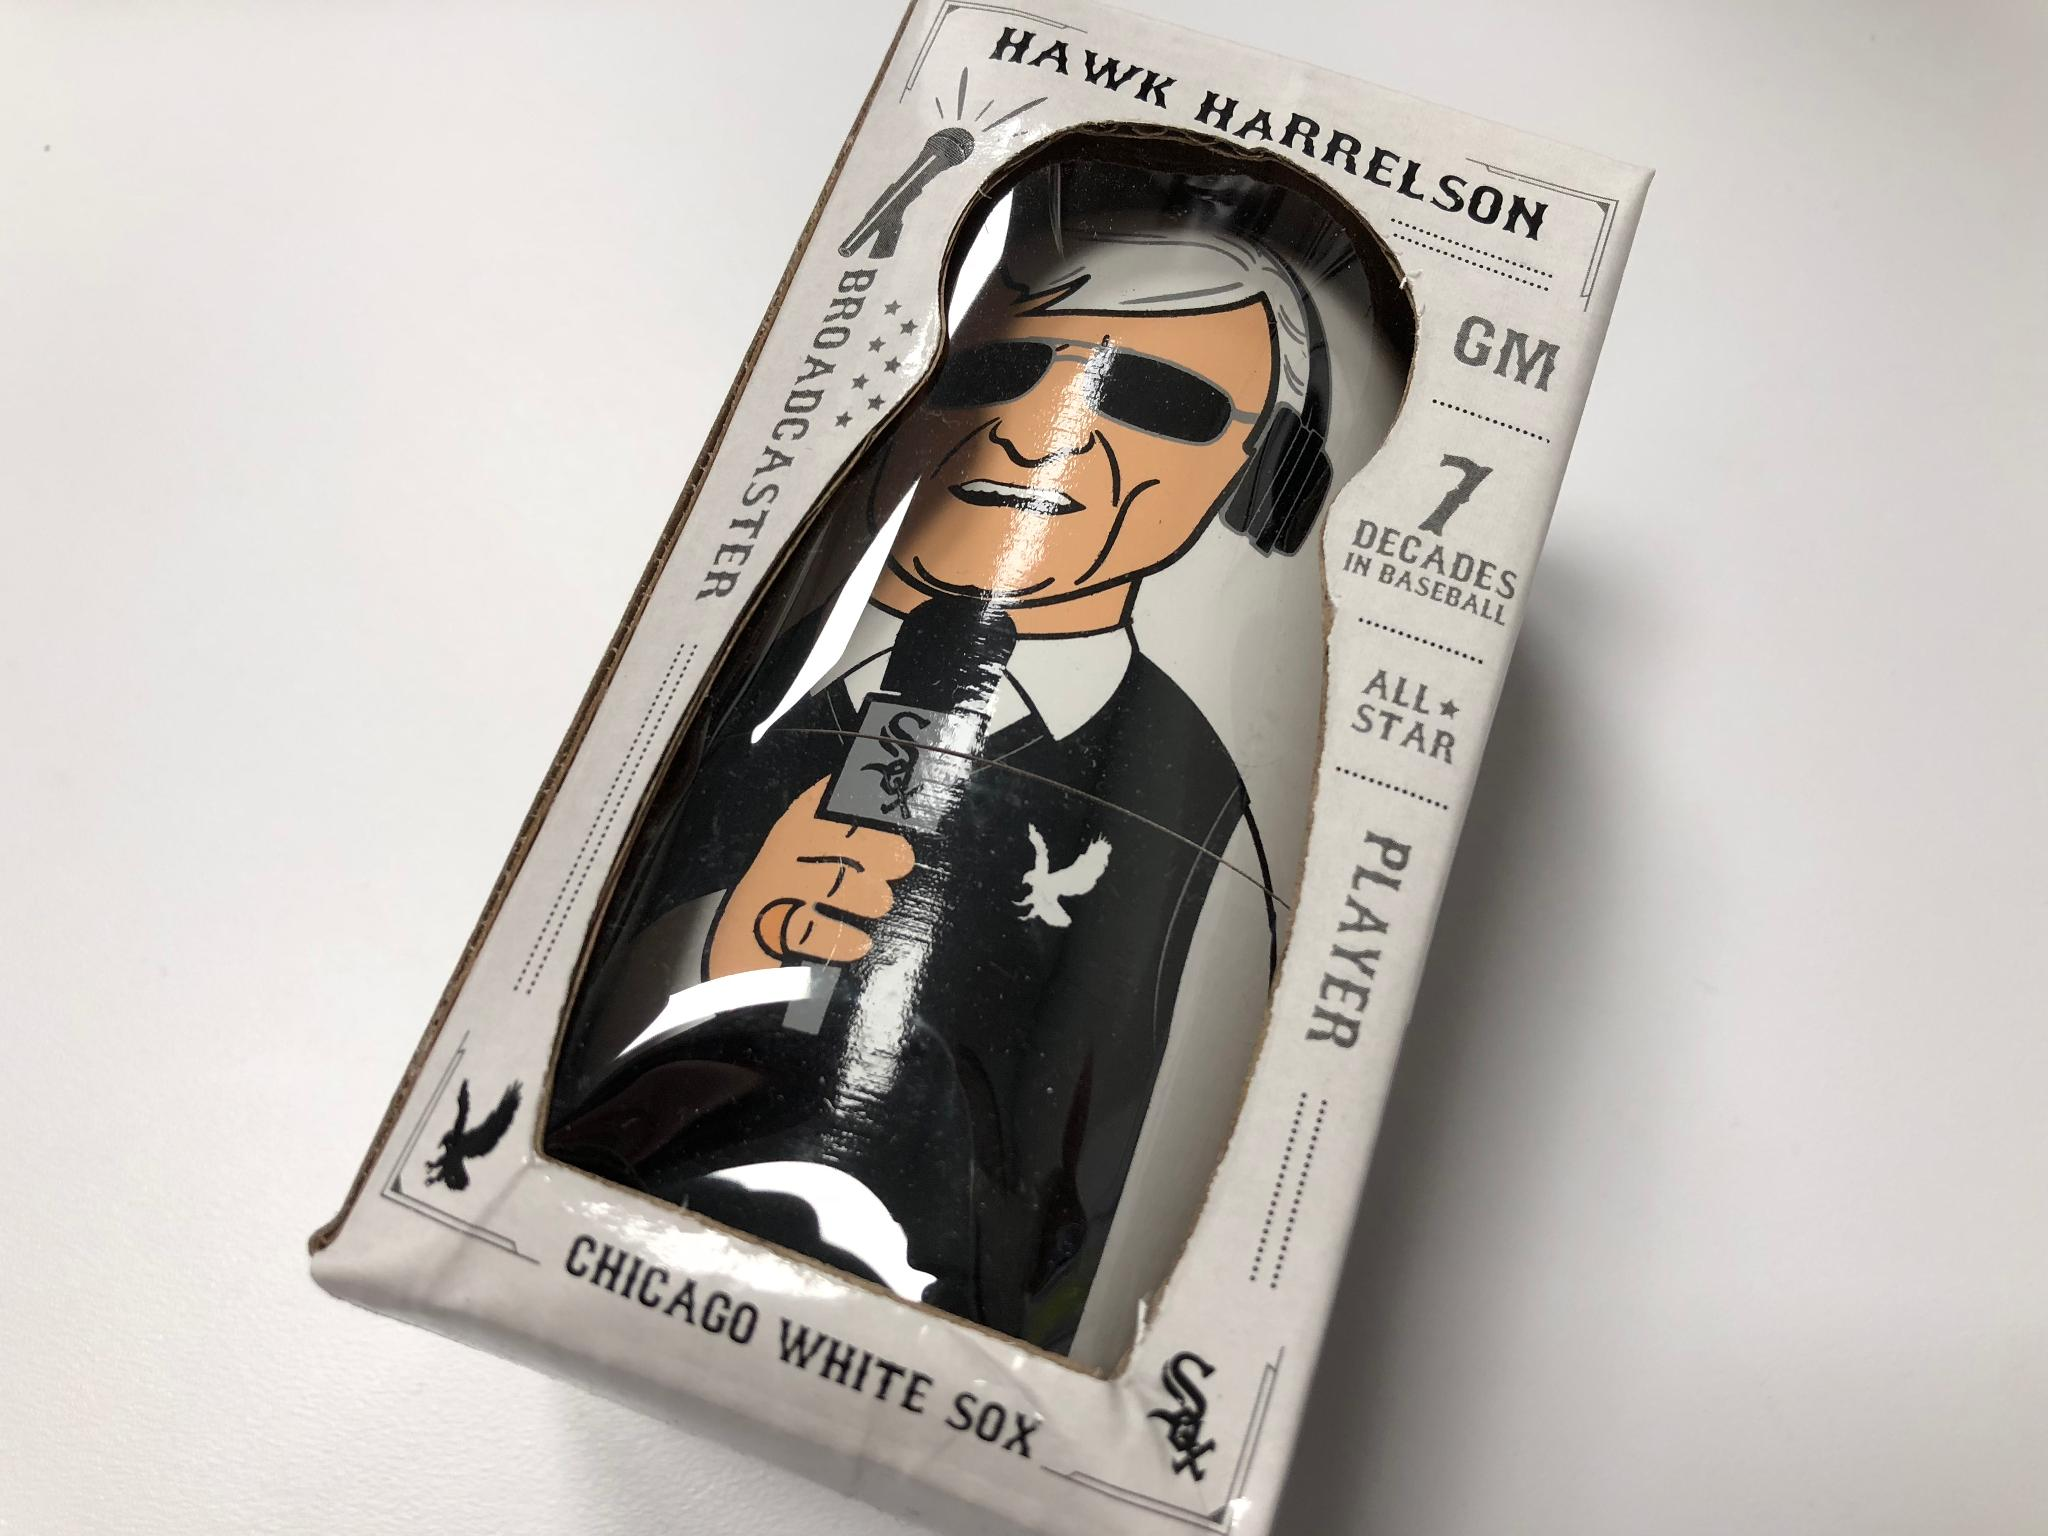 Thank you, Hawk!  RETWEET for a chance to win a Hawk Harrelson nesting doll.  ��: https://t.co/f1ChfFme3C https://t.co/Uz4UkyW2S3